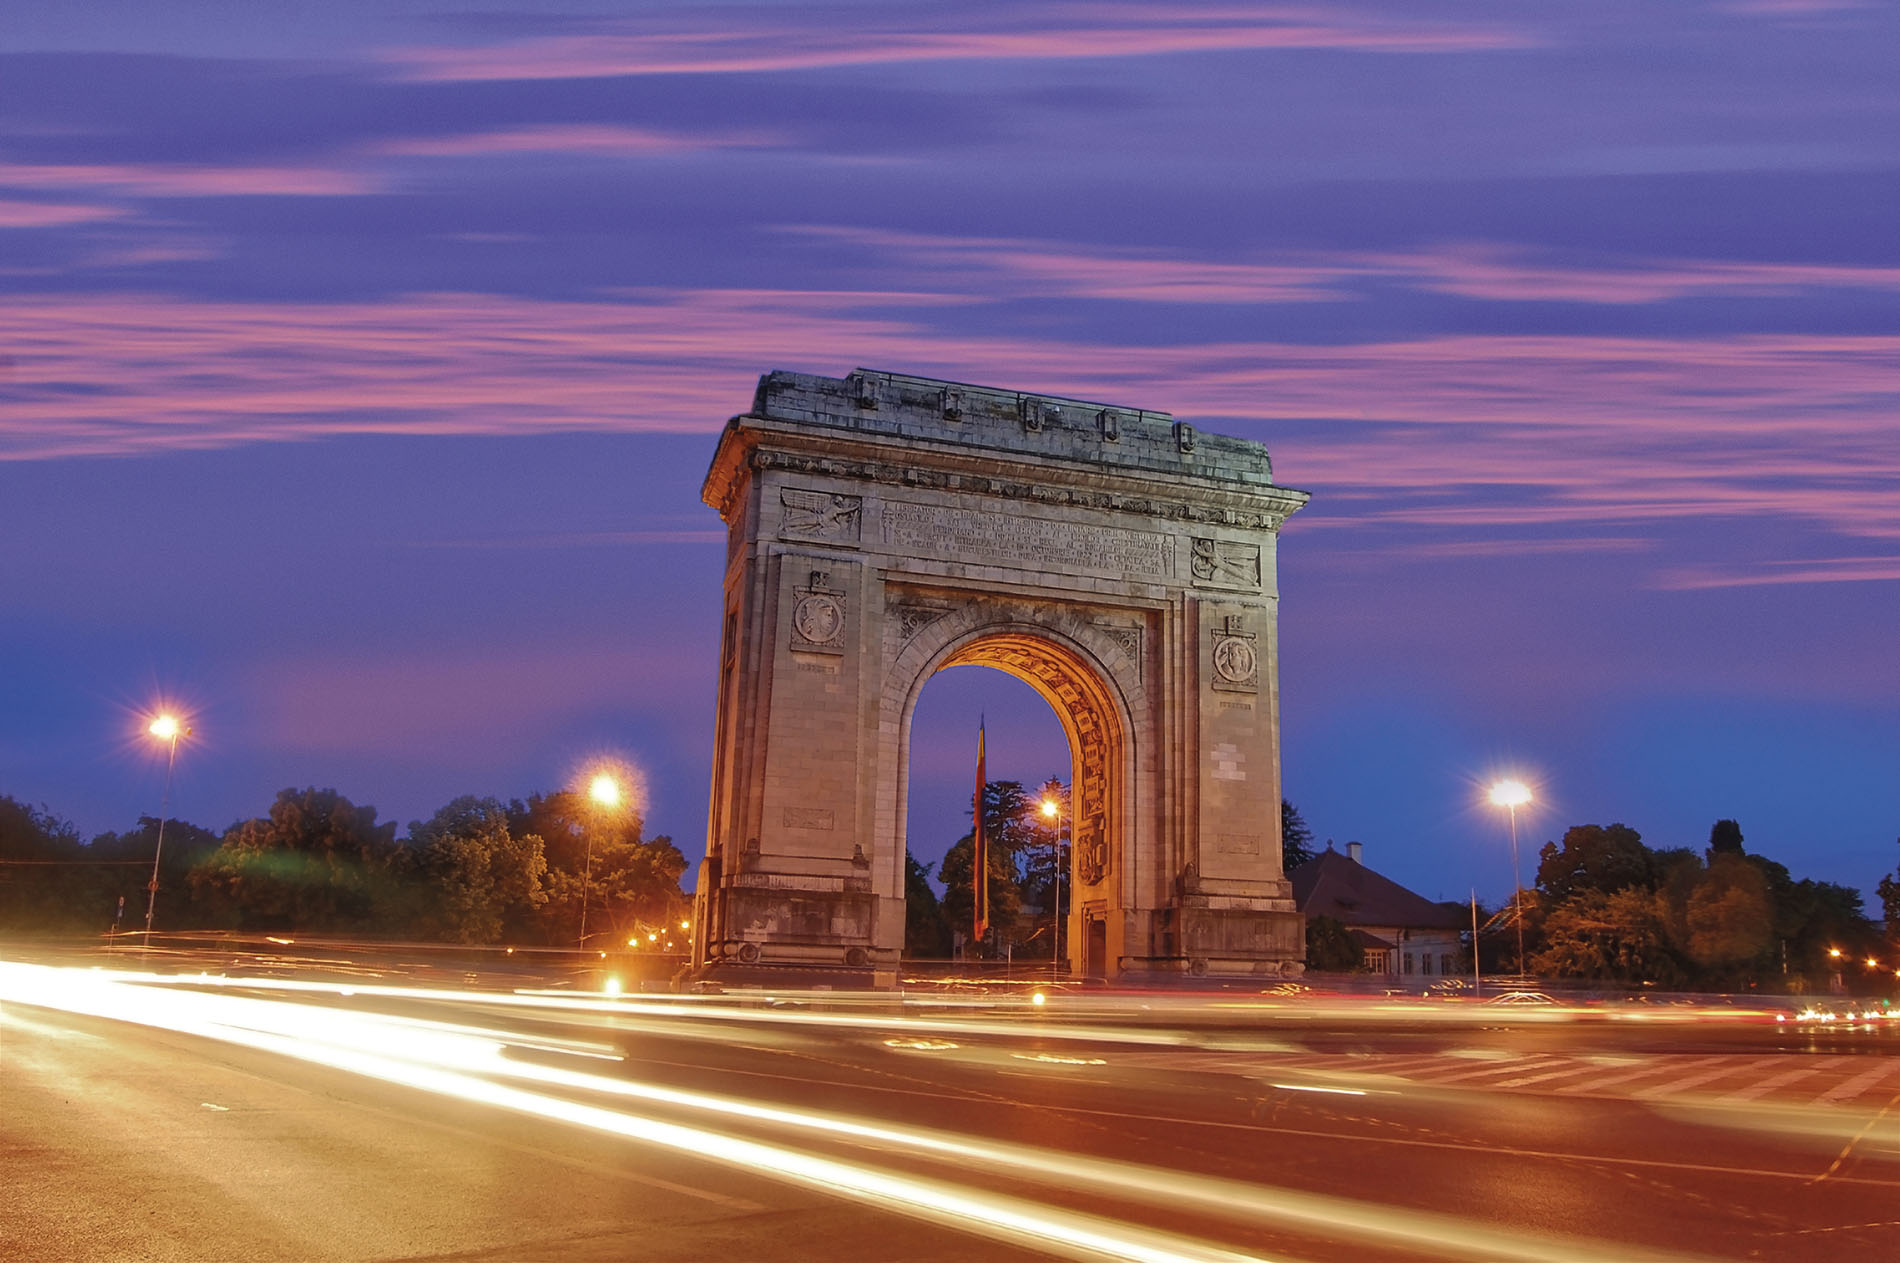 Stoic triumphal arch in Bucharest, Romania